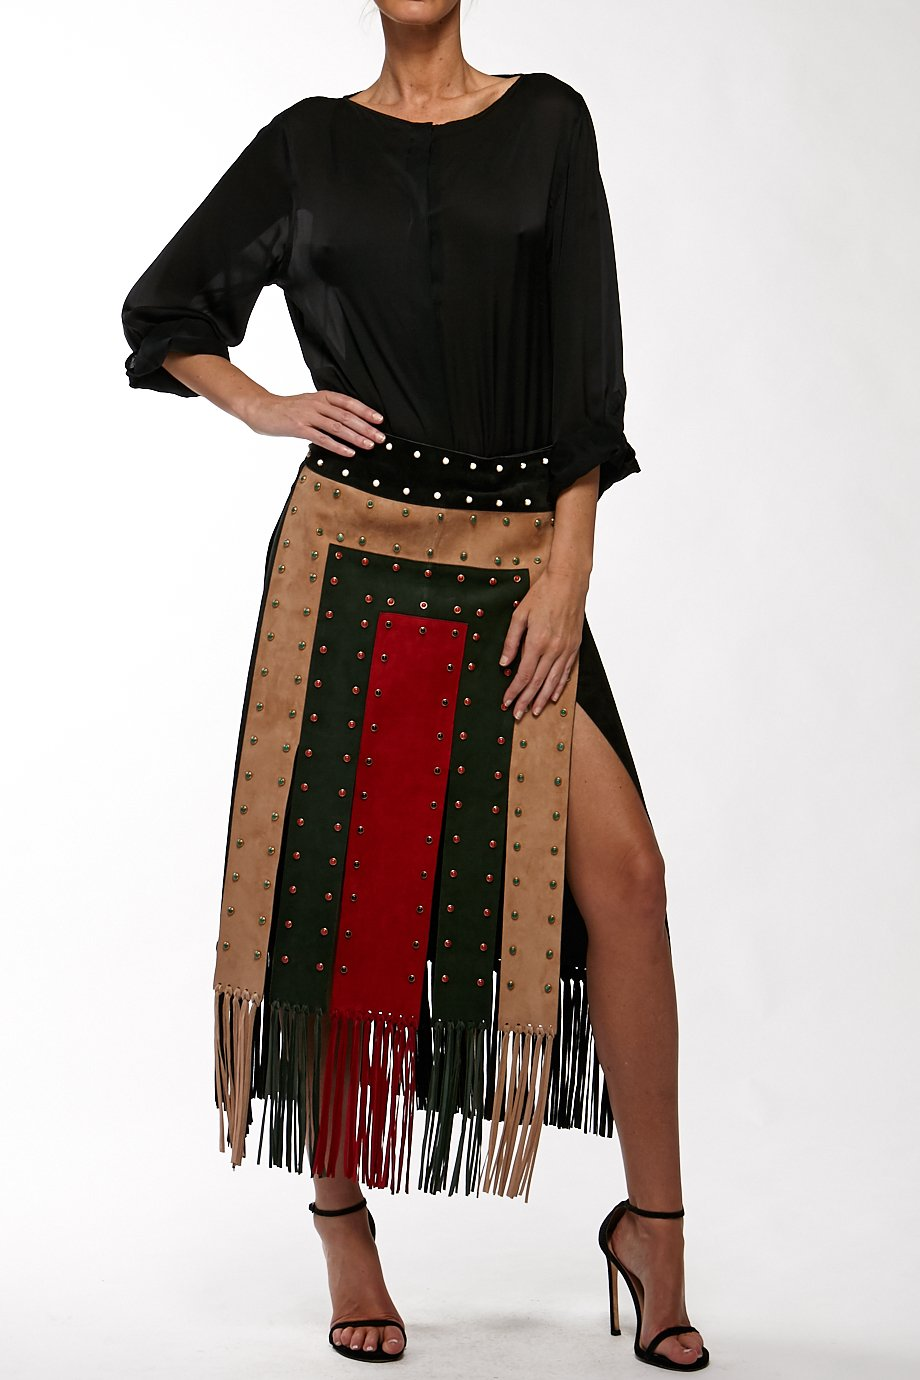 Valentino Black Velvet Tricolor Fringe Skirt Dress